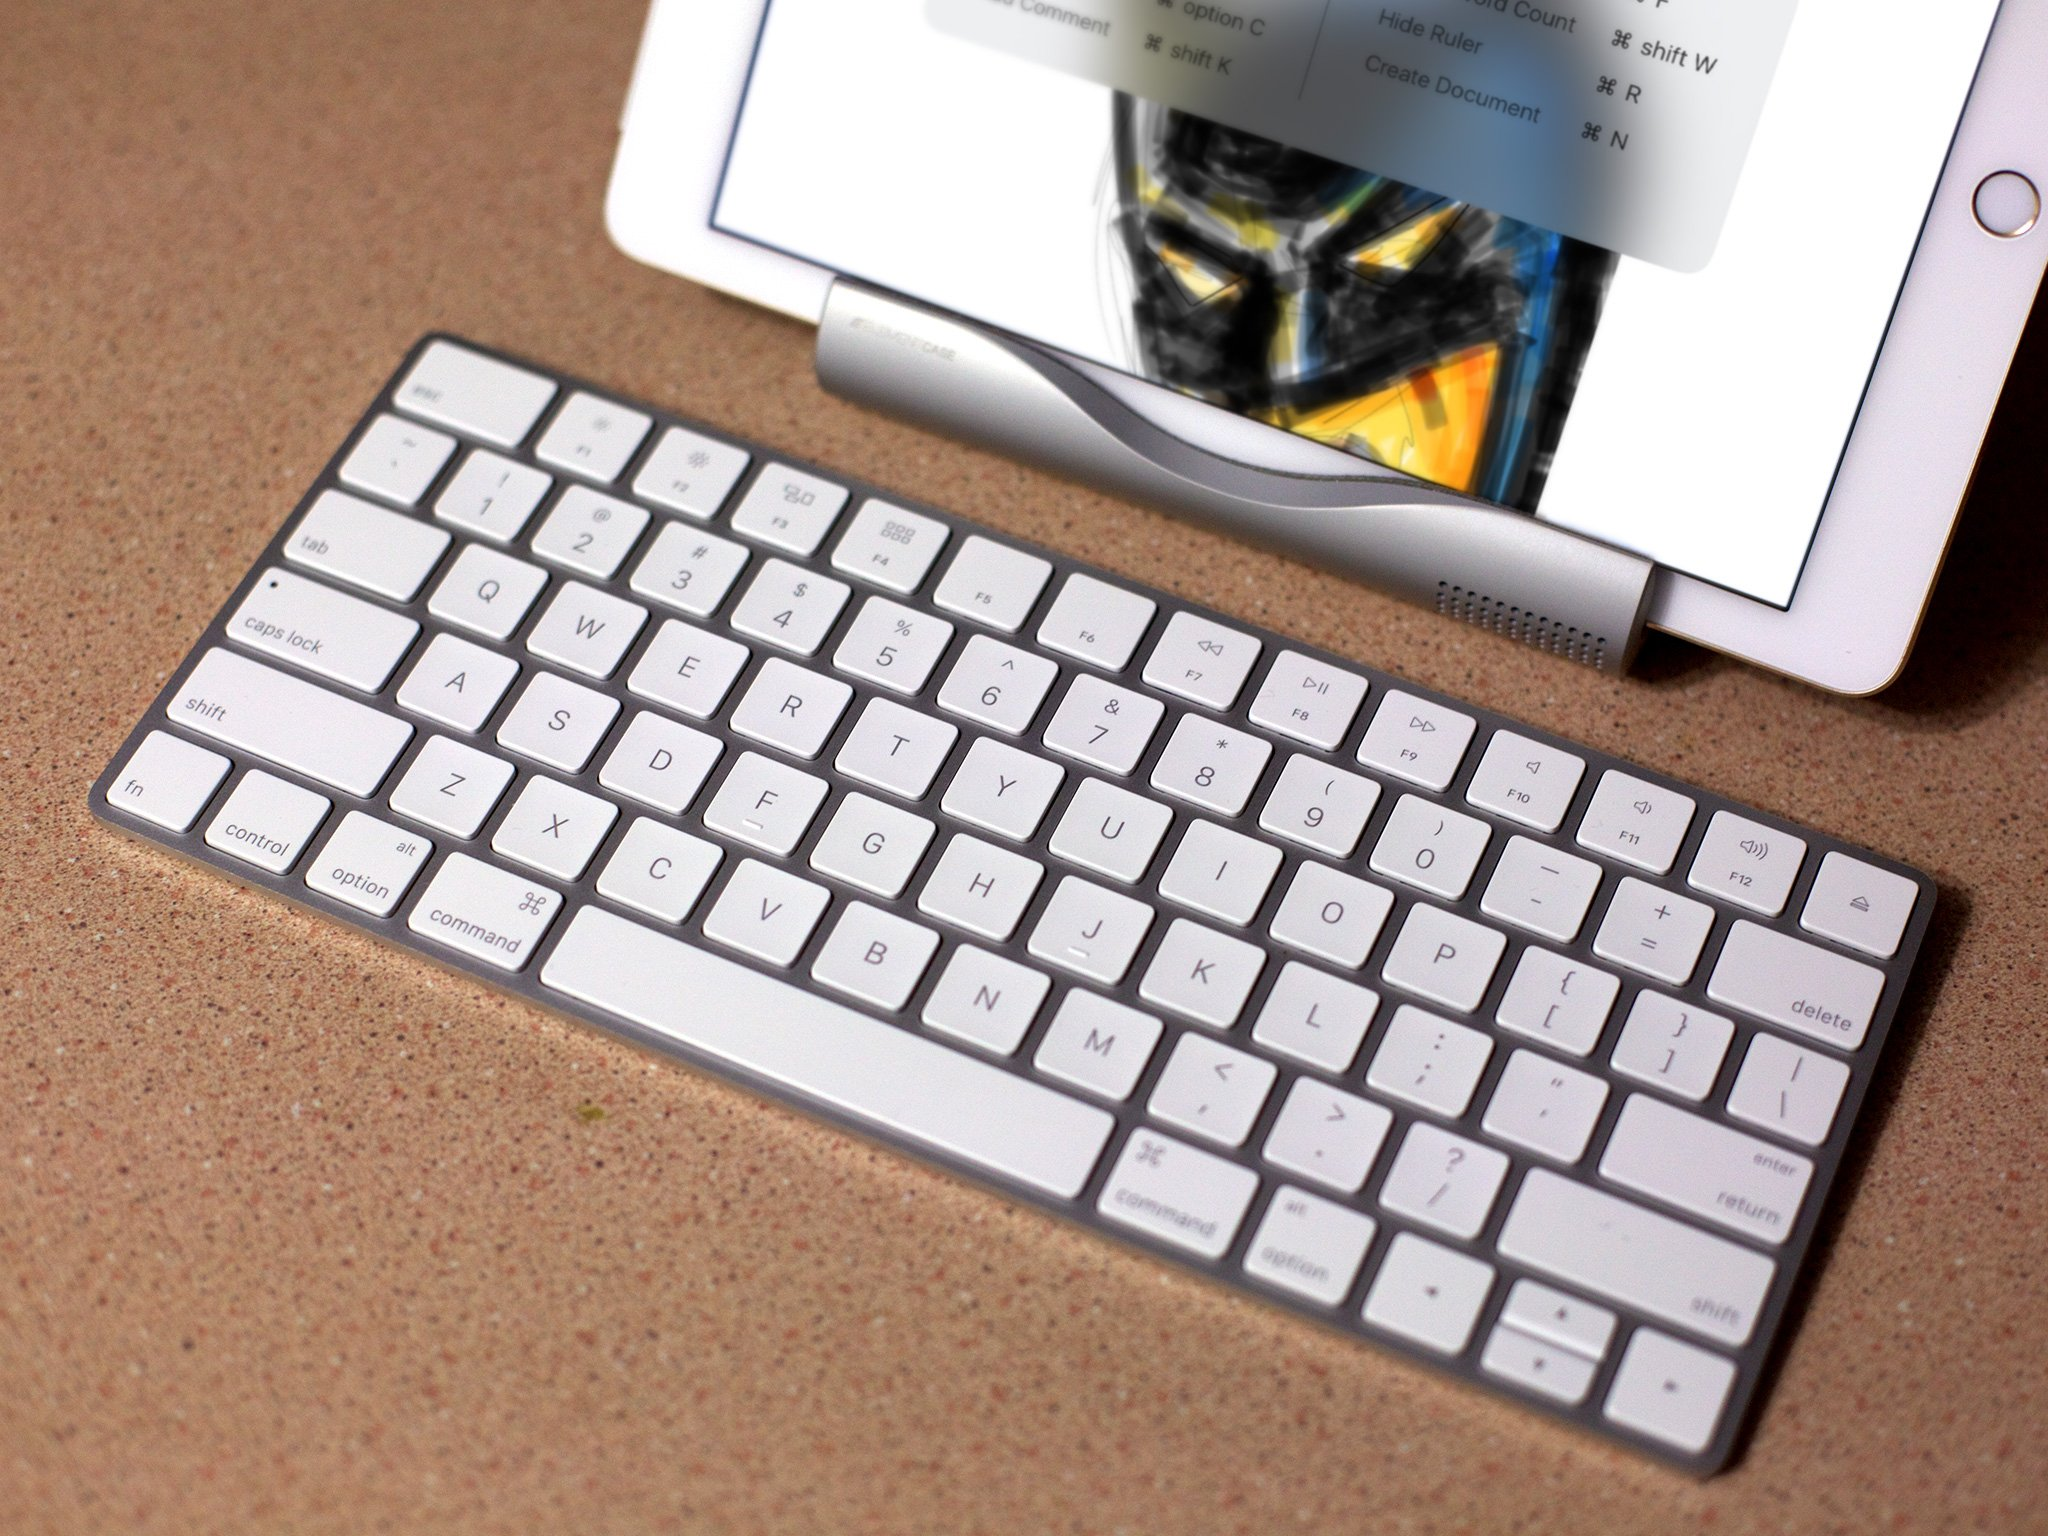 medium resolution of how to connect a bluetooth keyboard to ipad